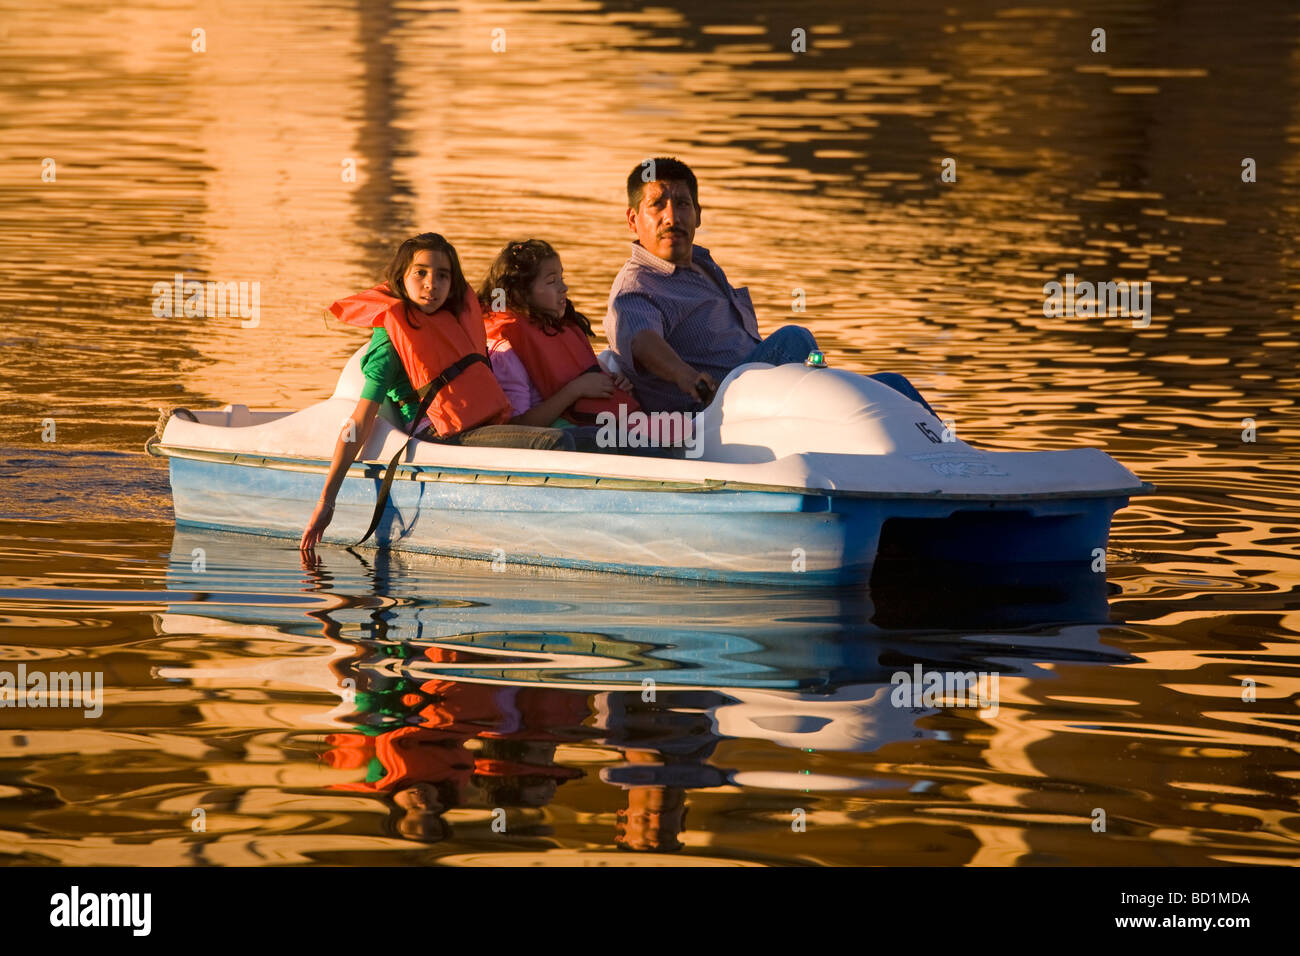 Boating on Town Lake Tempe Greater Phoenix Area Arizona USA - Stock Image